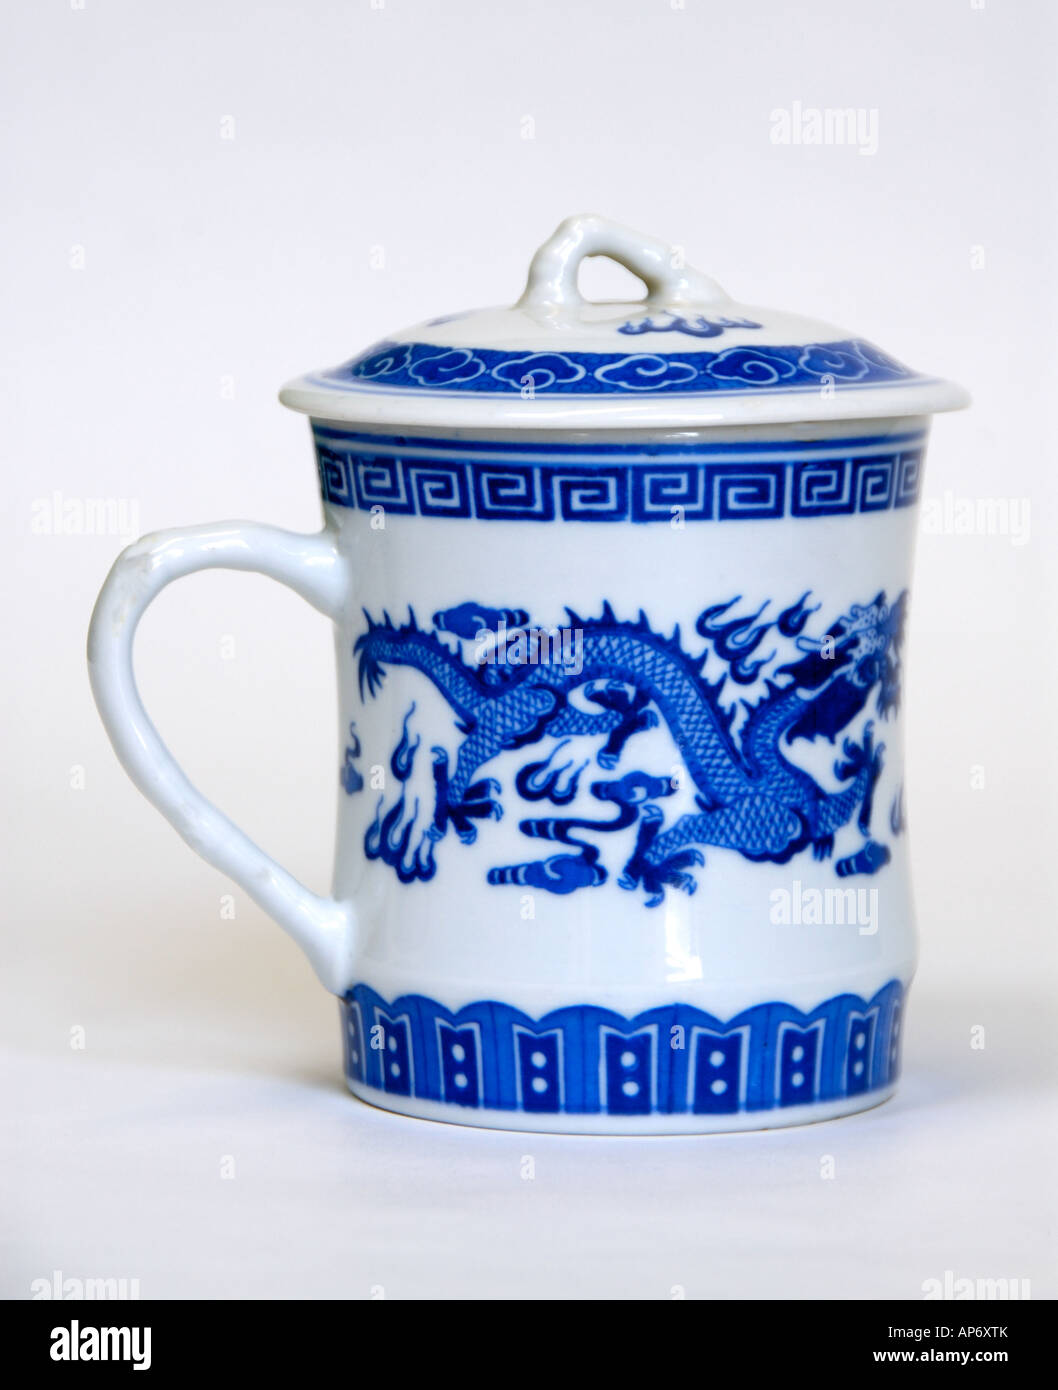 Chinese Ceramic Tea Cup With Lid Colour White With Blue Dragon